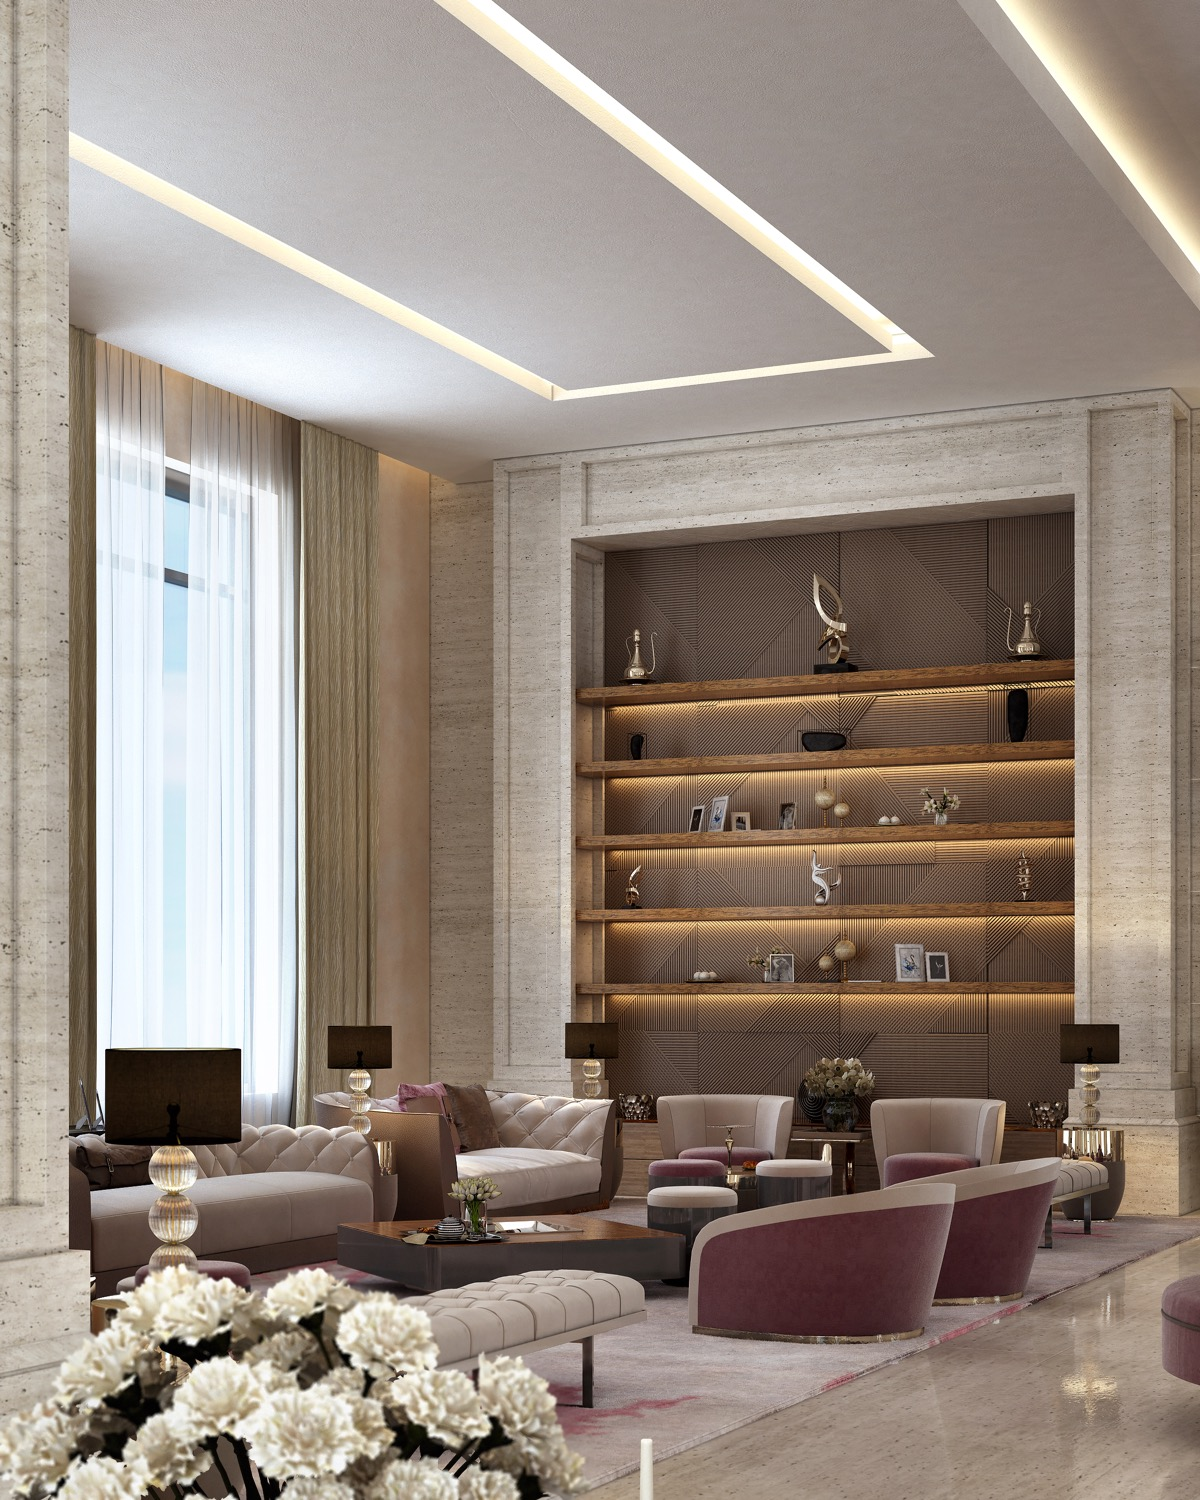 Luxury Living Room: 51 Luxury Living Rooms And Tips You Could Use From Them